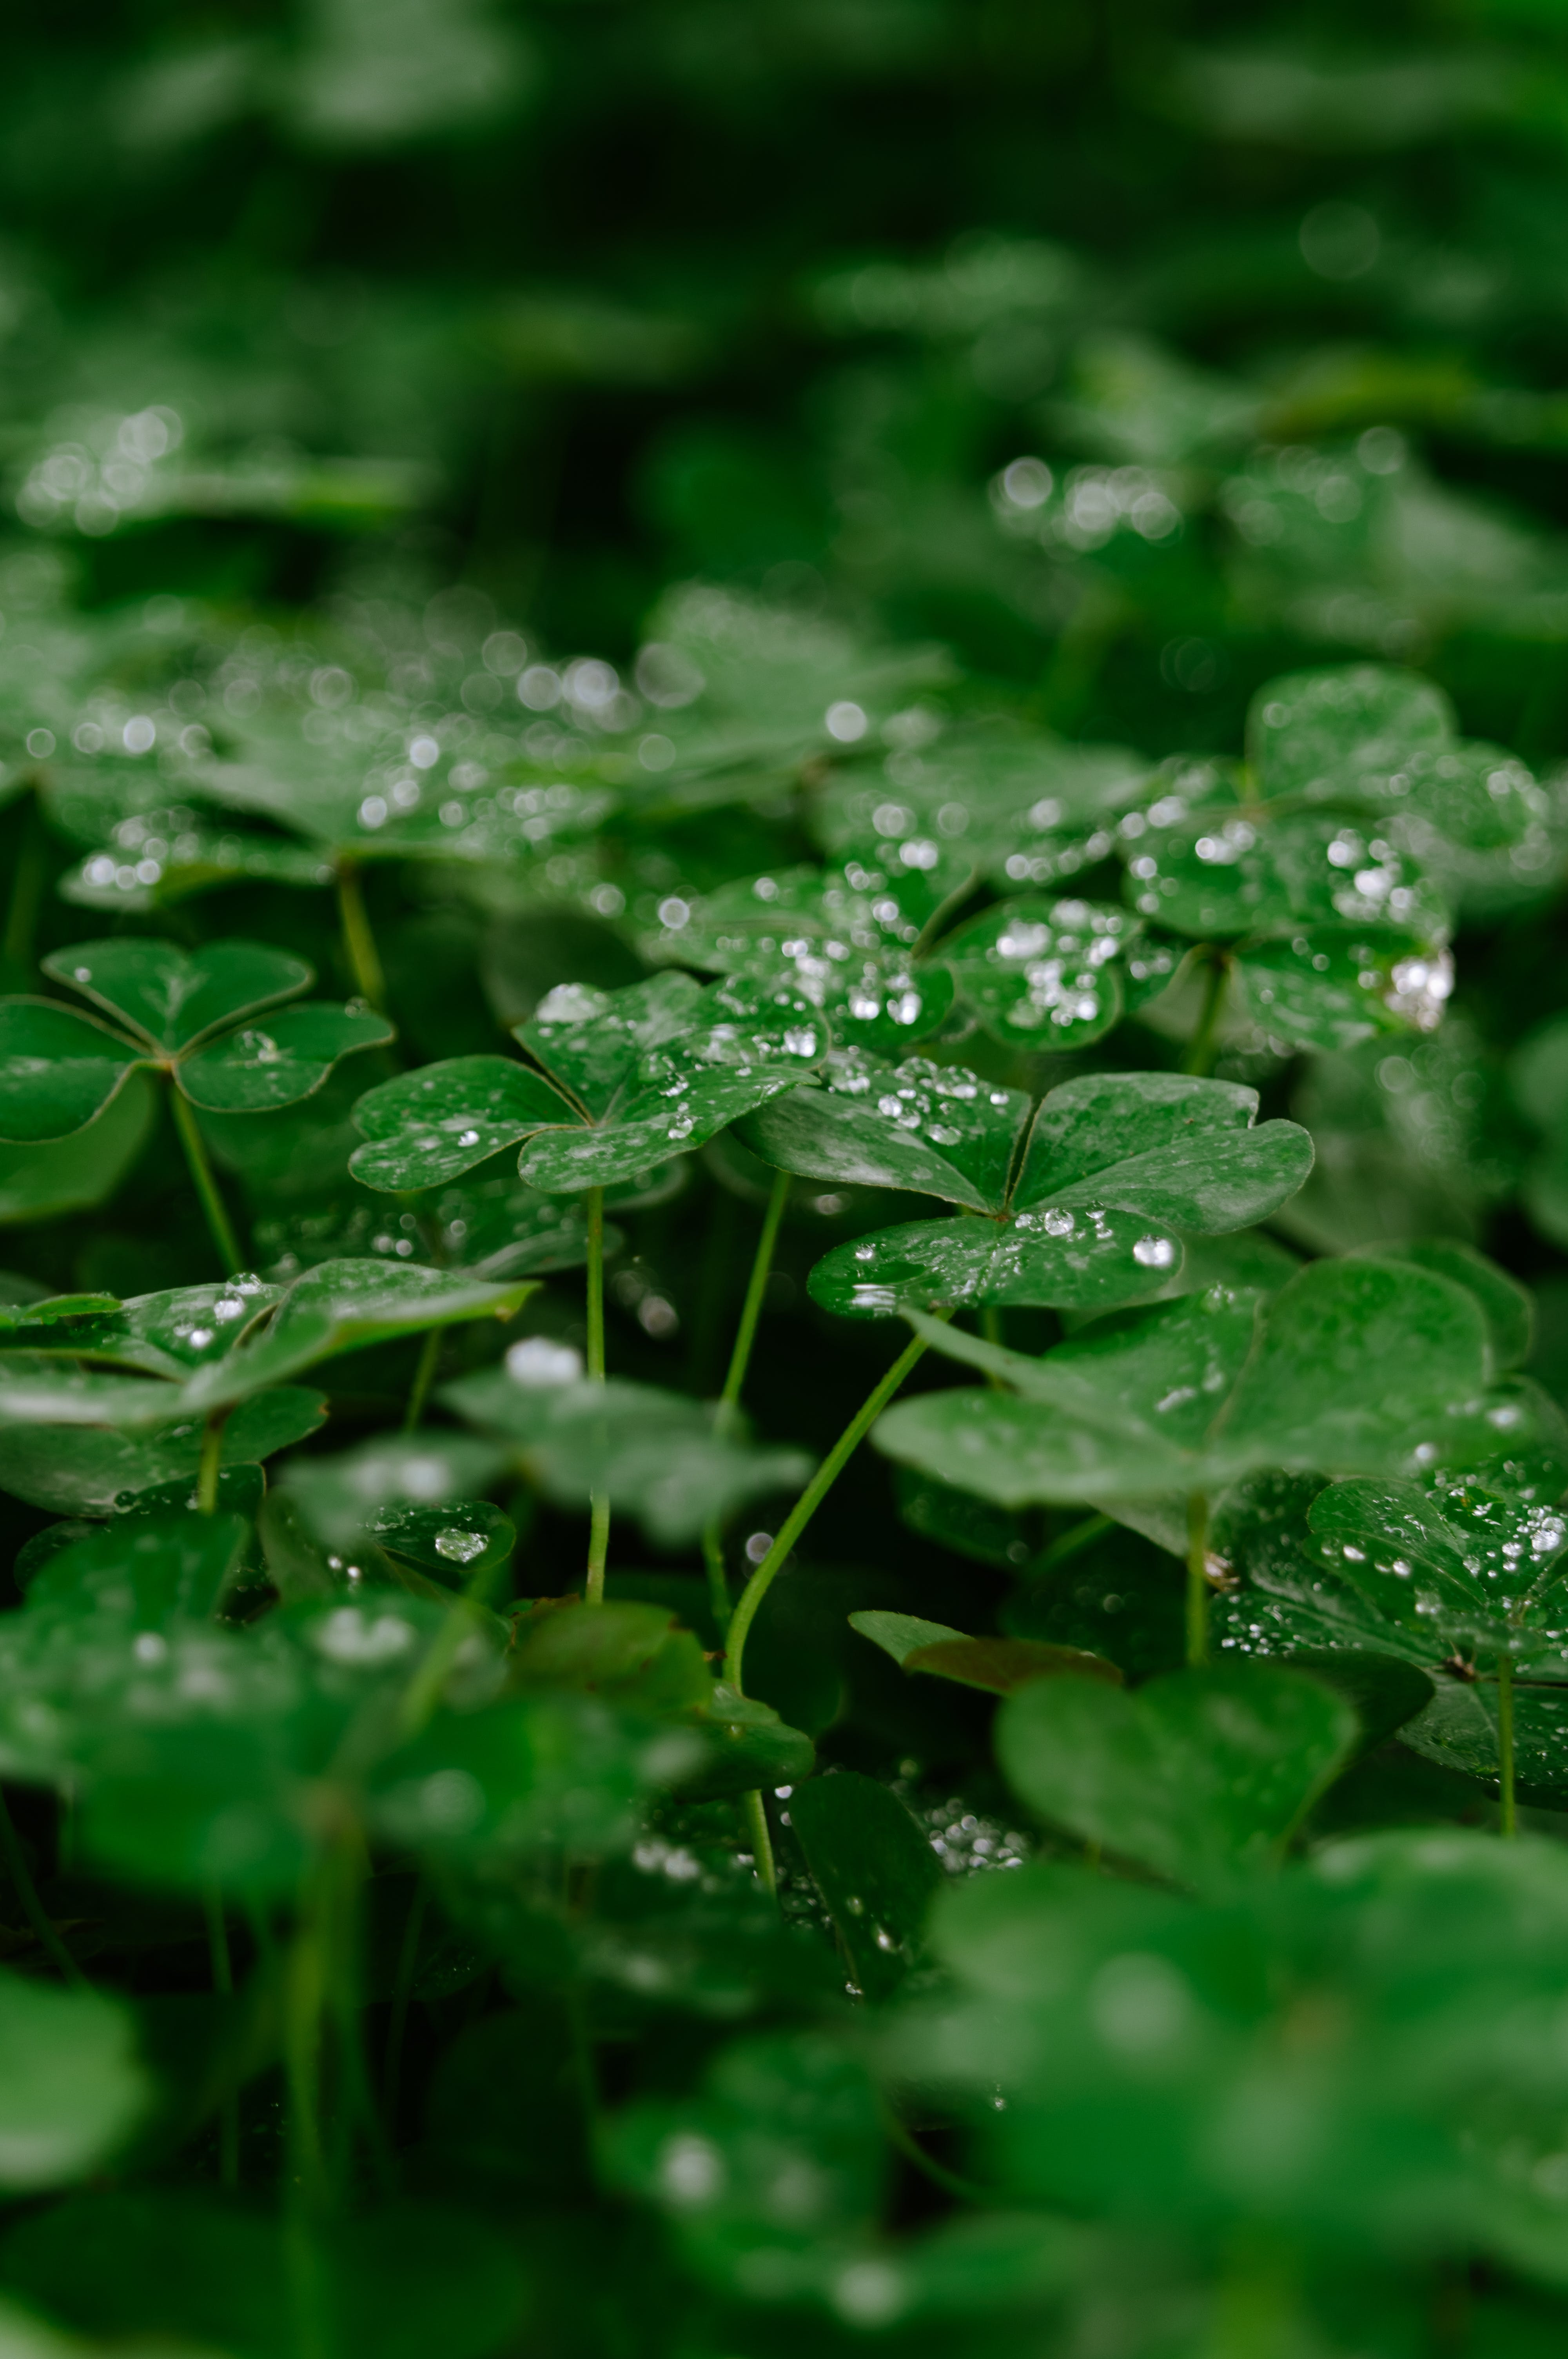 Free stock photo of plant, dew, rain, plants